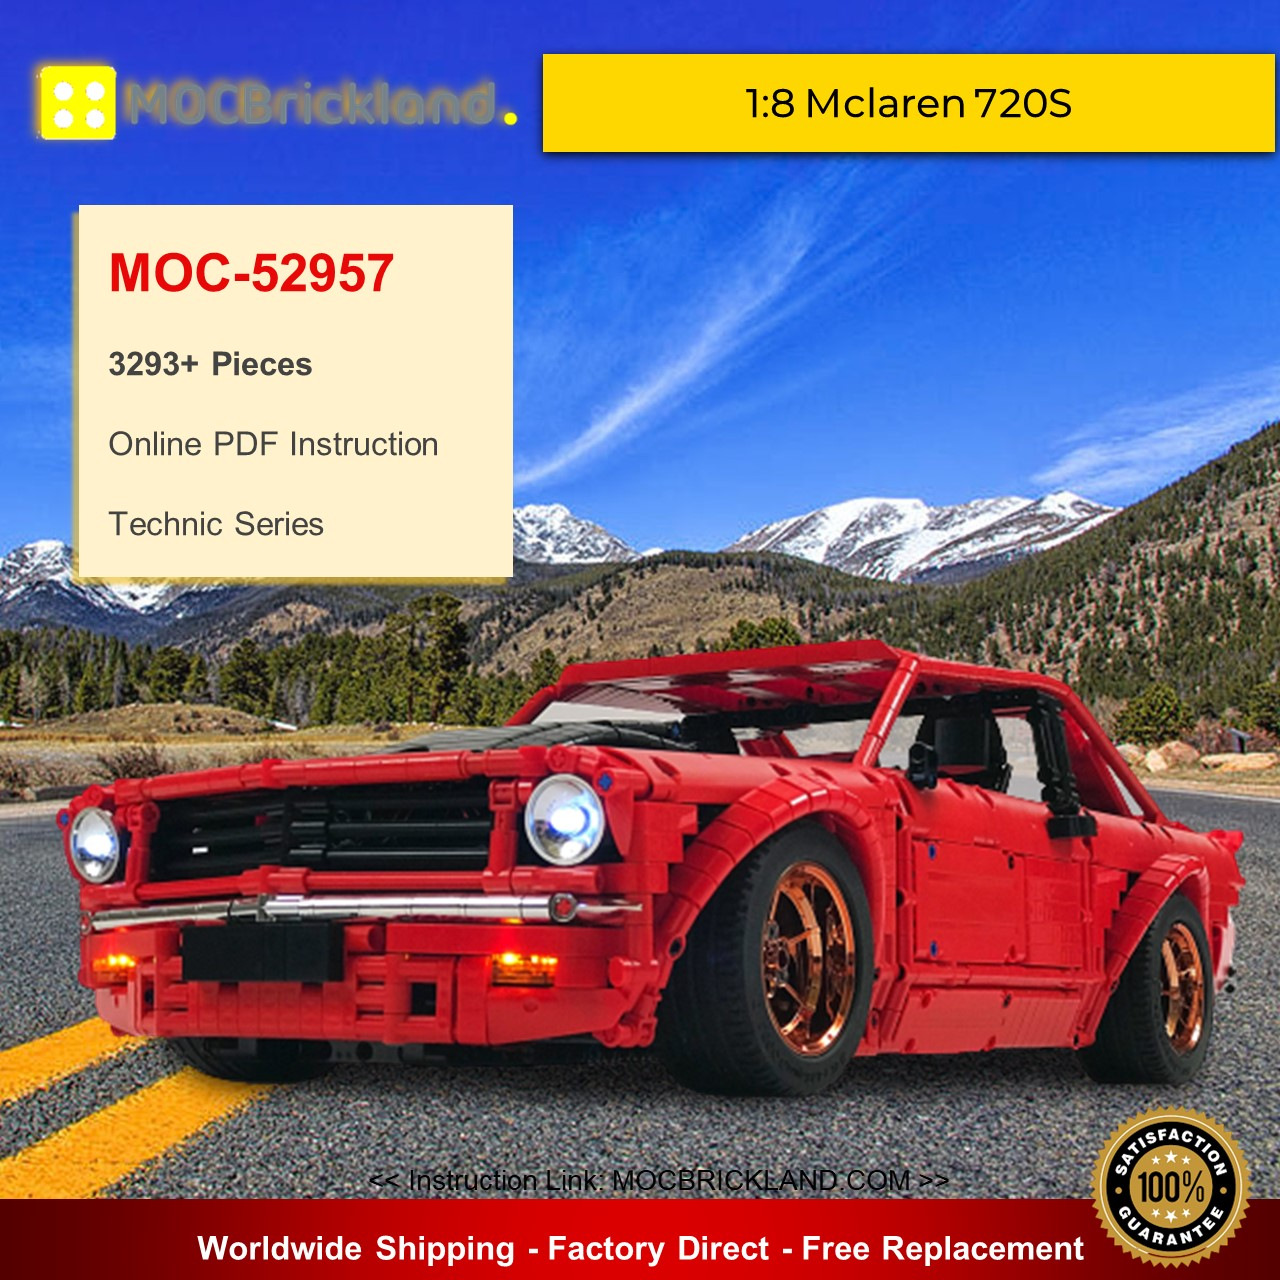 Technic MOC-52957 Holden Torana A9X By Loxlego MOCBRICKLAND